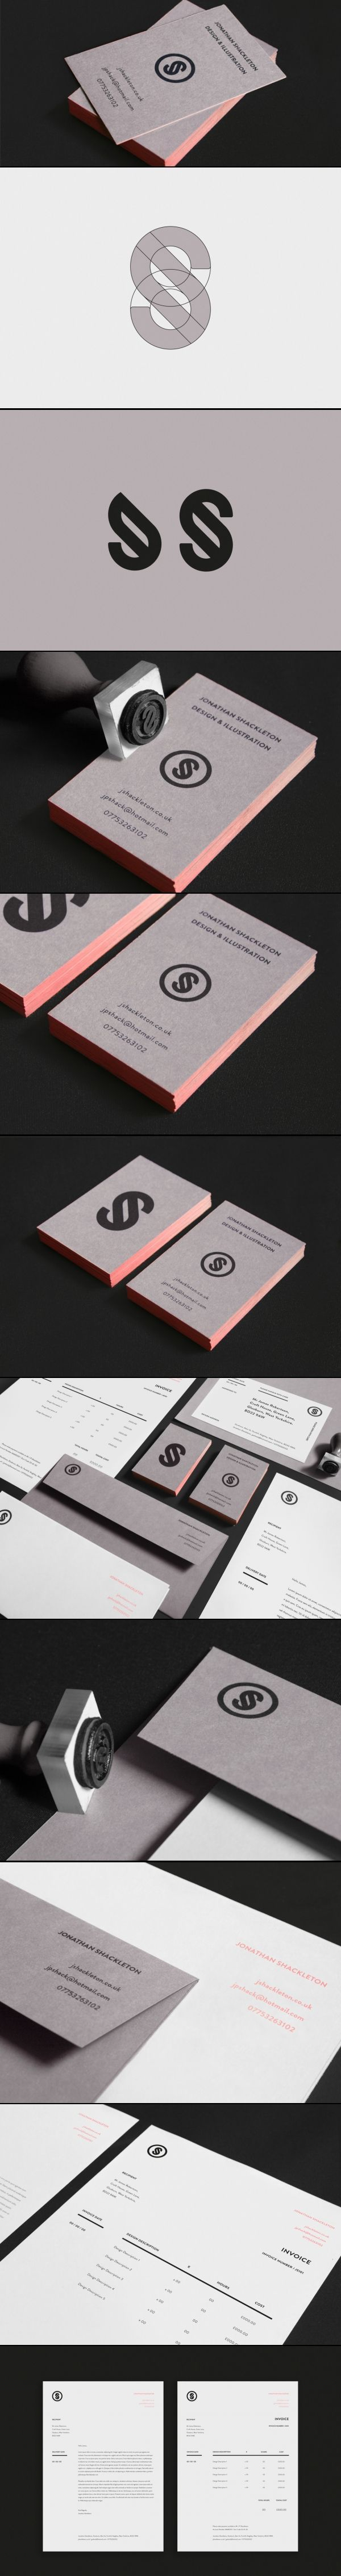 Corporate design logo business card identity